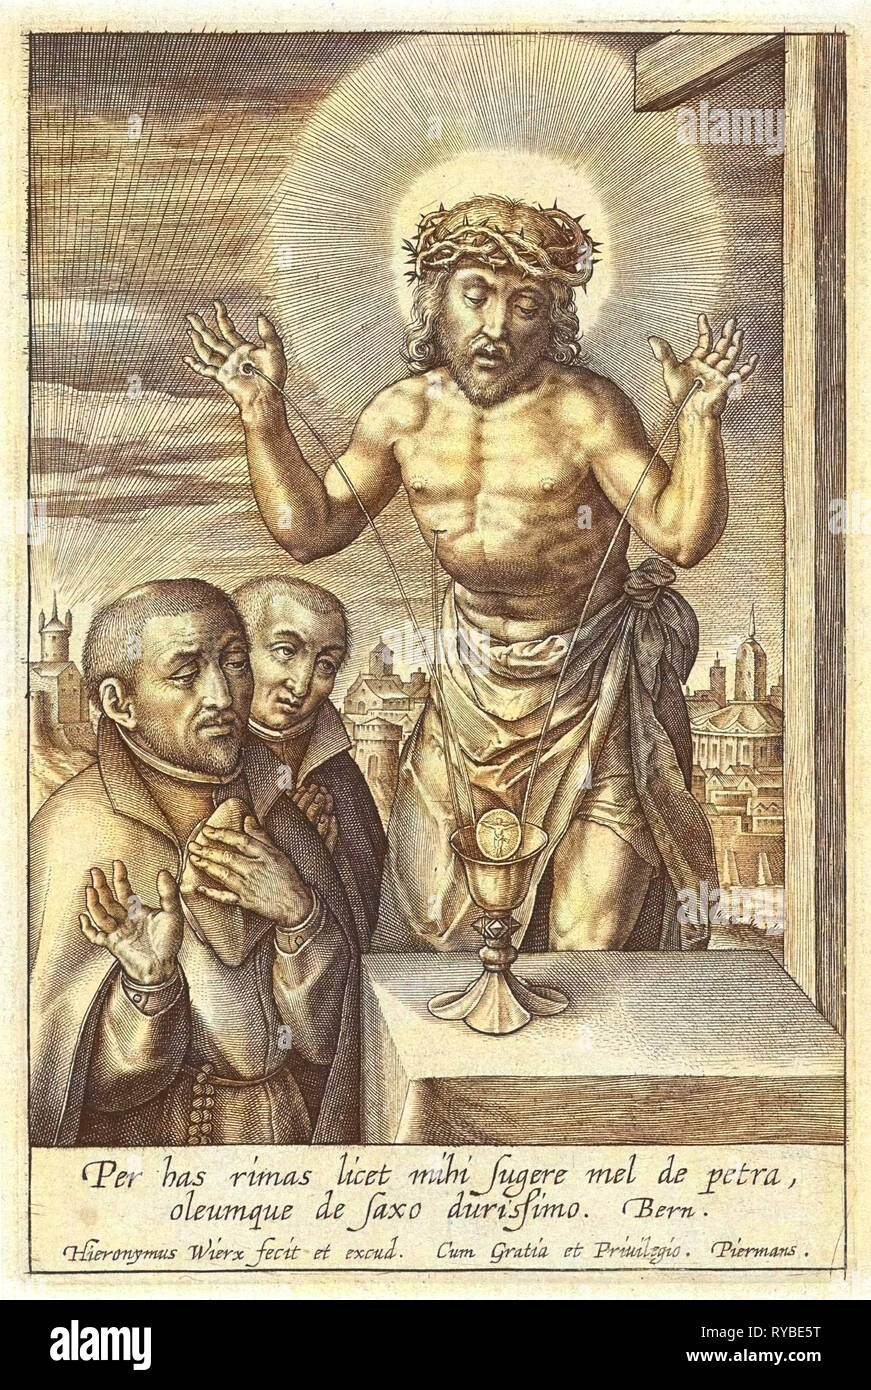 Blood of Christ received in chalice, Hieronymus Wierix, 1563 - before 1619, print maker: Hieronymus Wierix, Piermans, 1563 - before 1619 - Stock Image